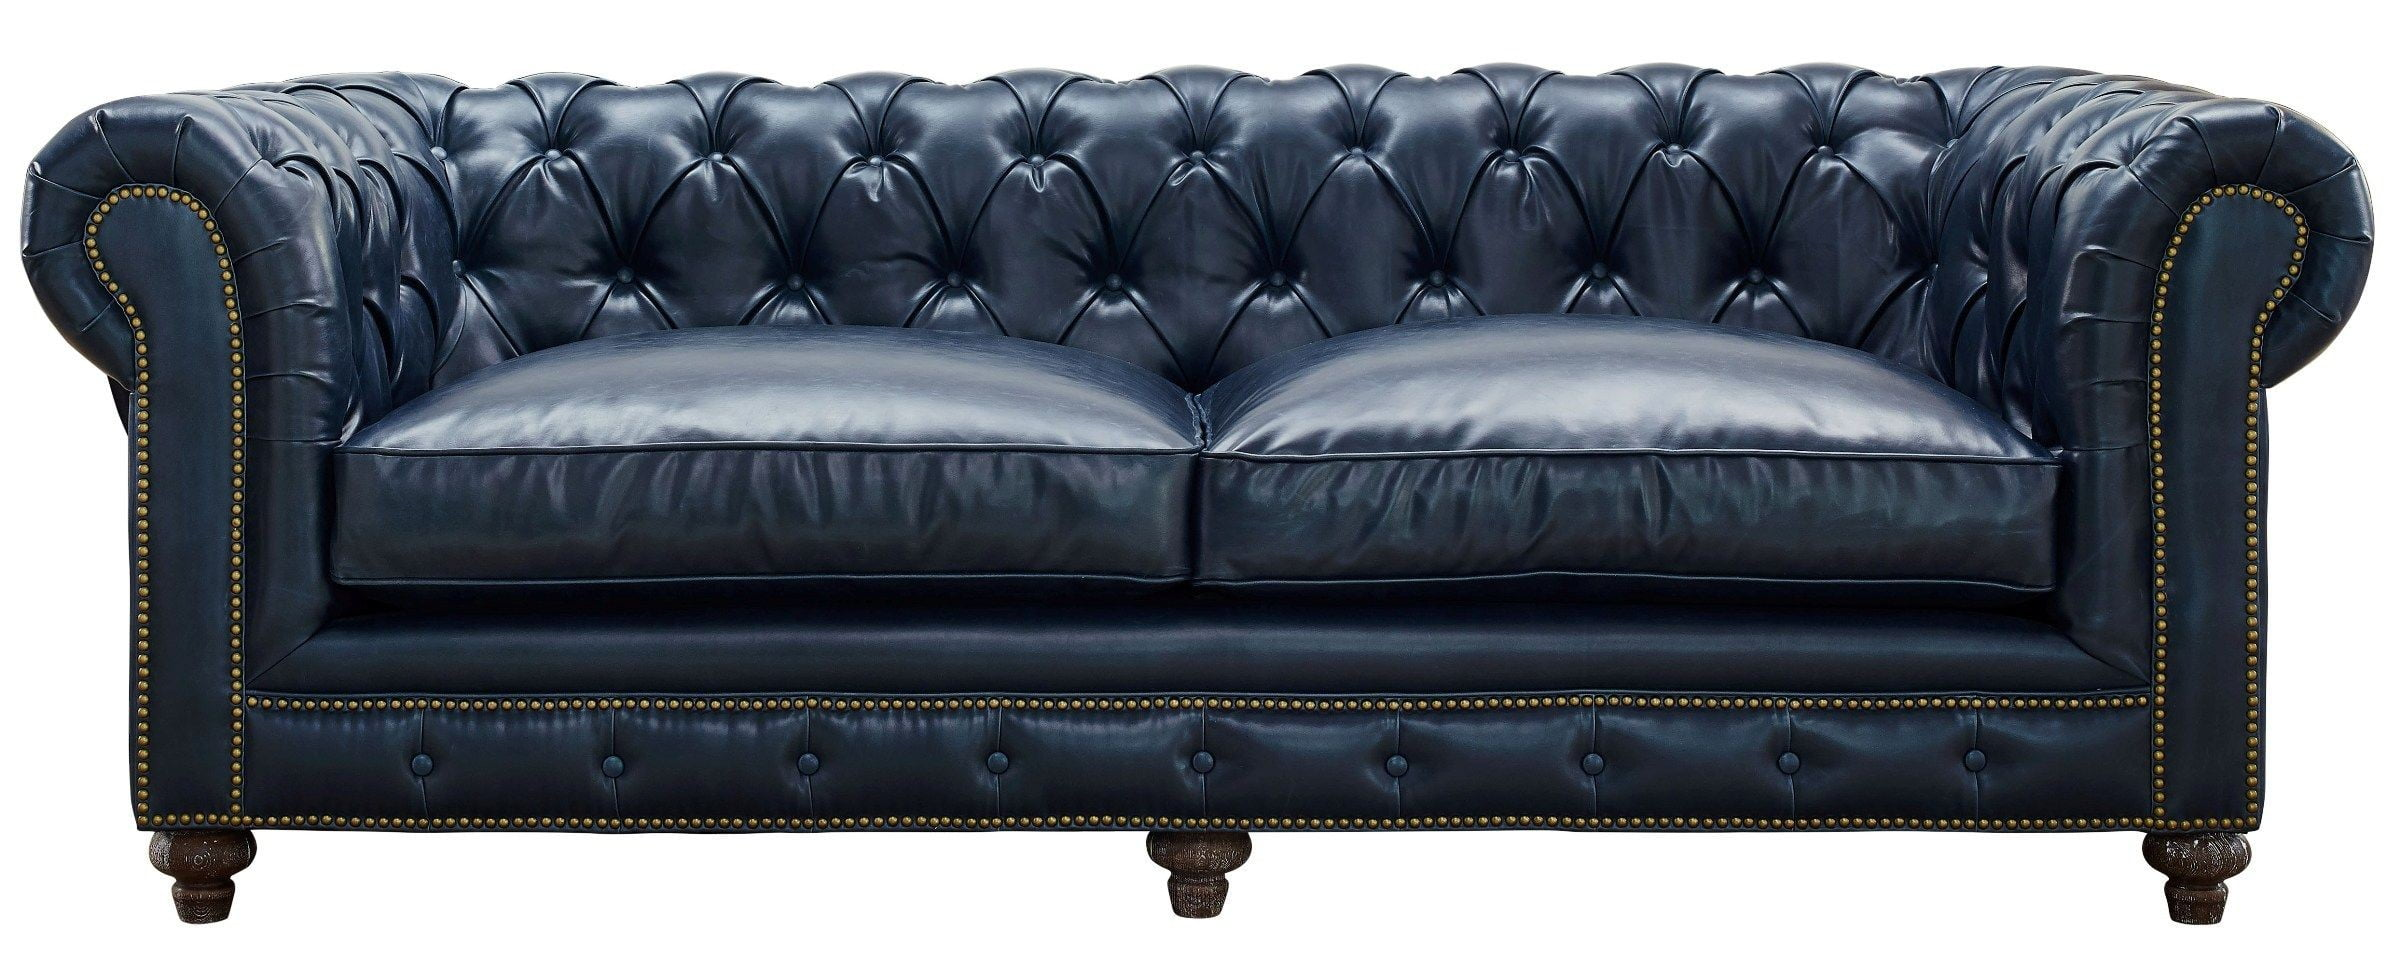 Durango rustic blue leather sofa from tov s38 coleman for Blue leather sofa